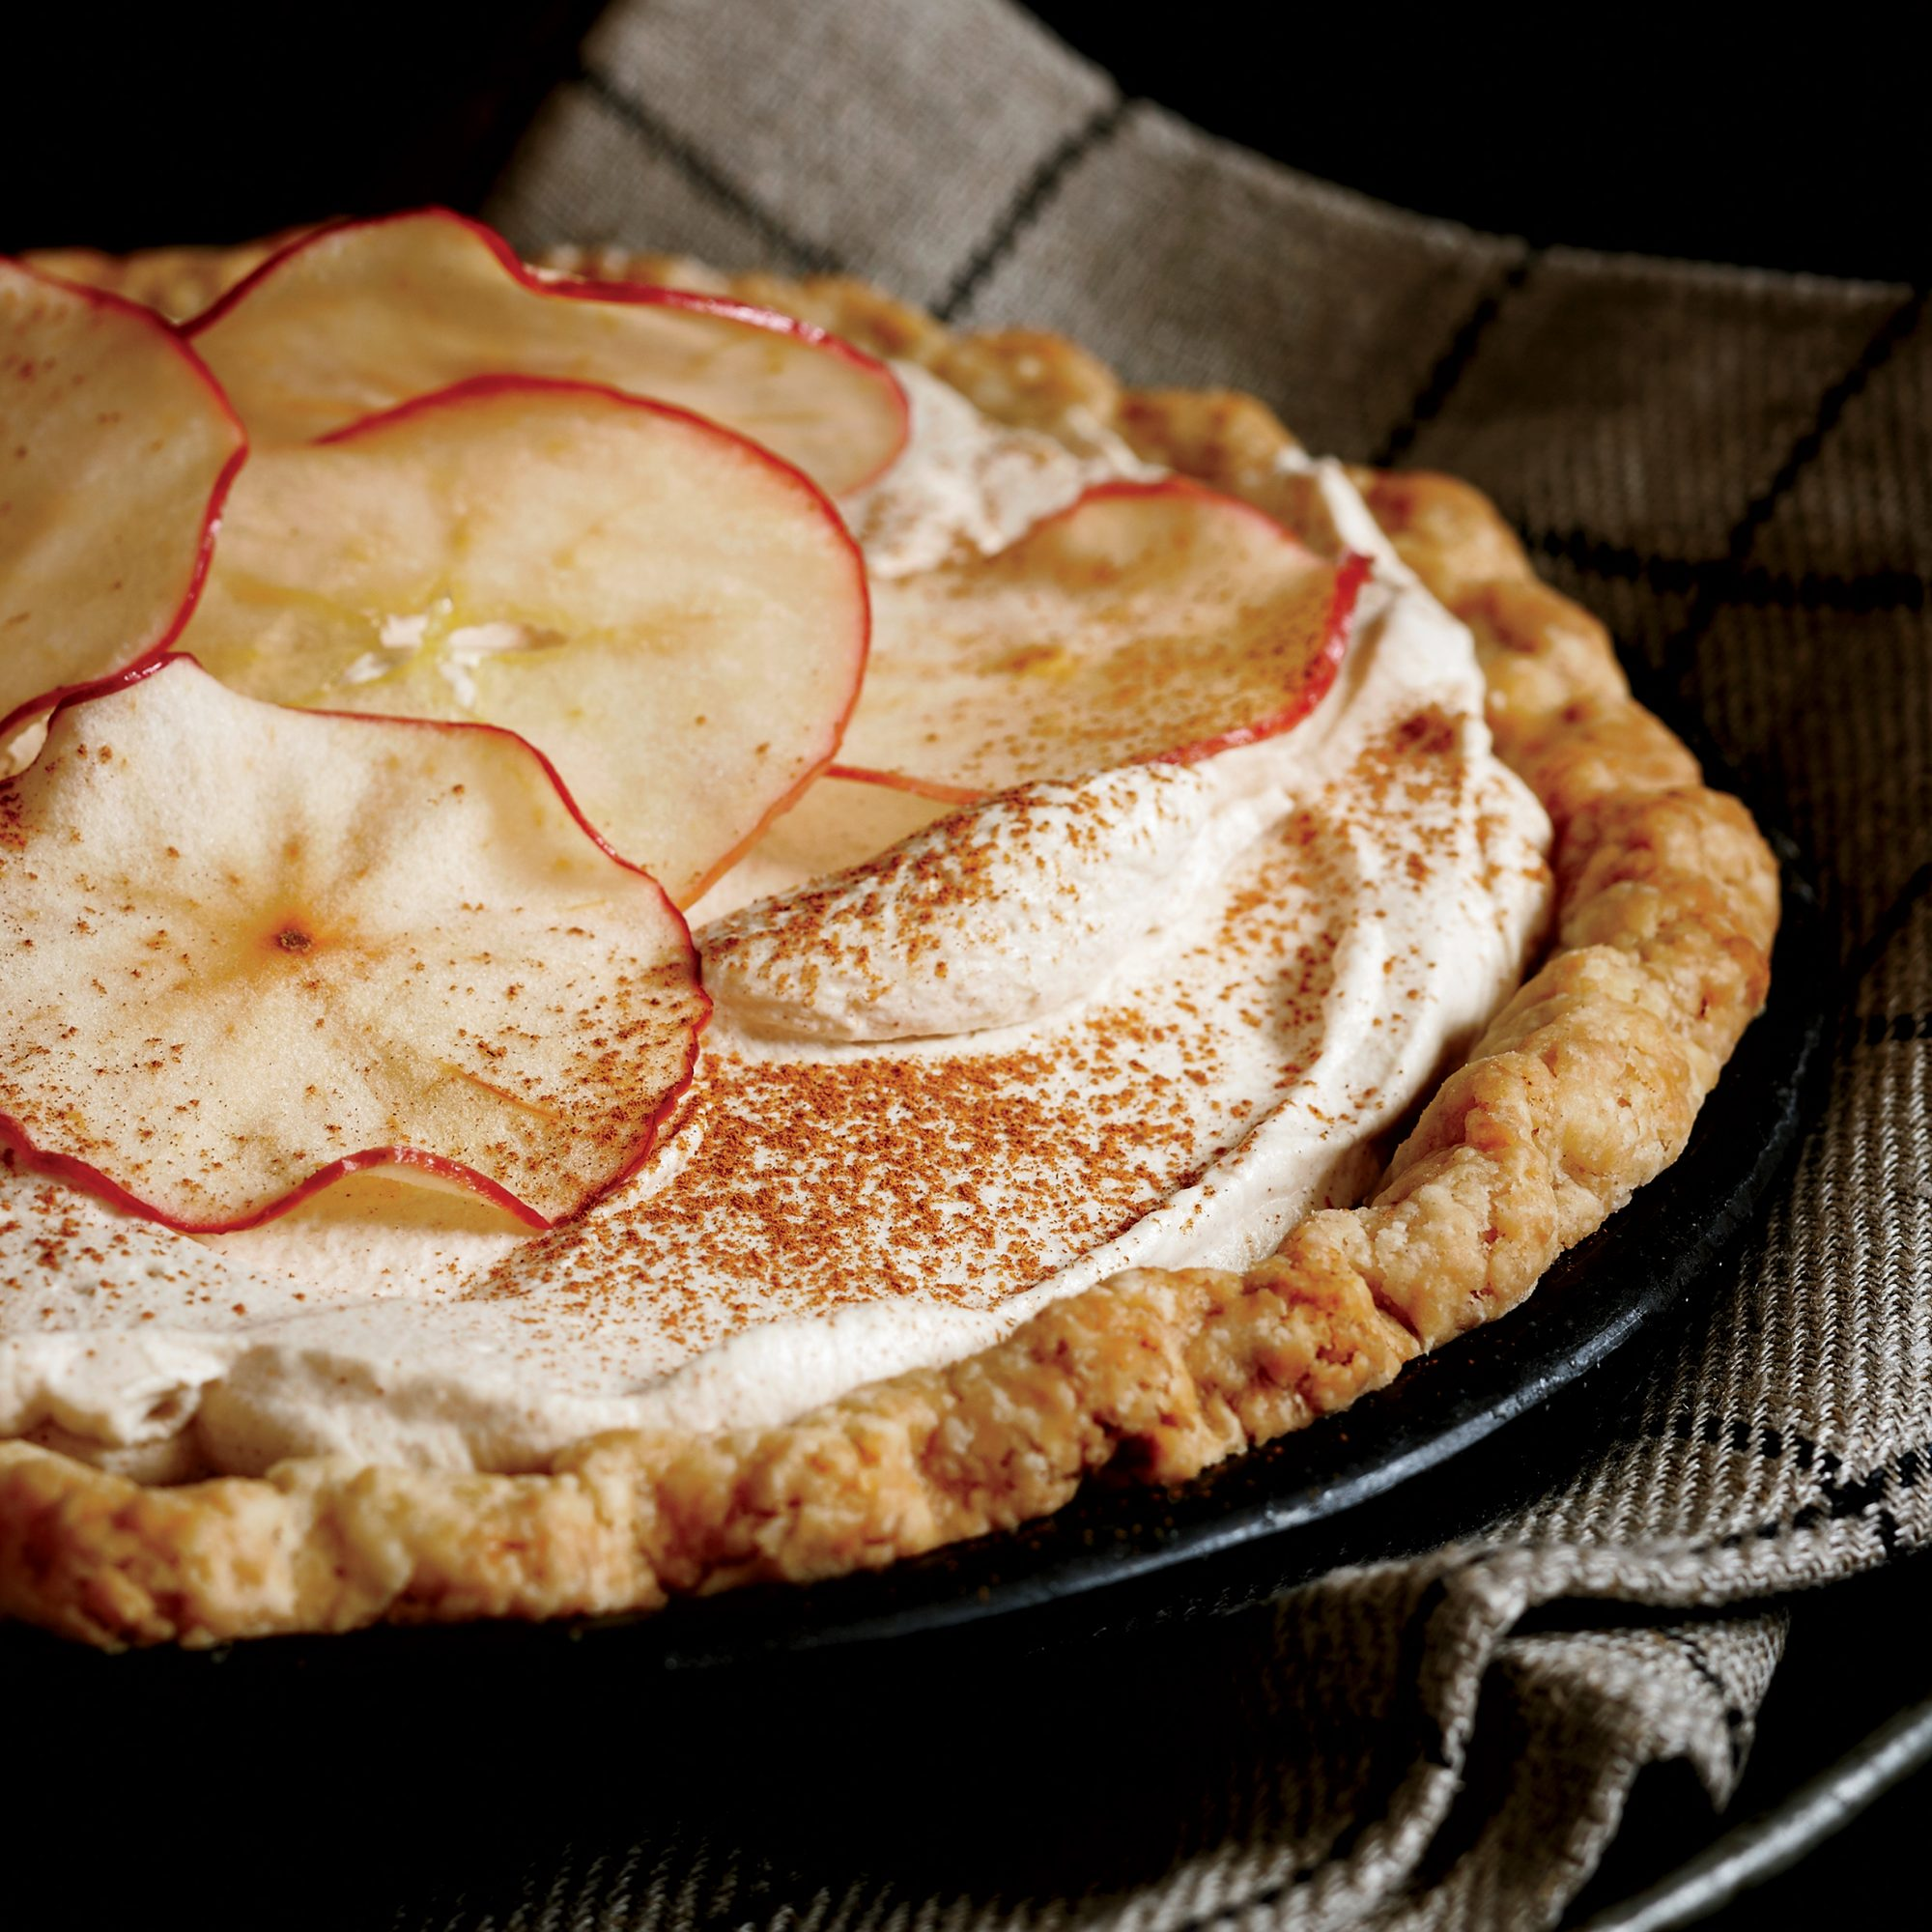 201111-r-apple-cider-cream-pie.jpg